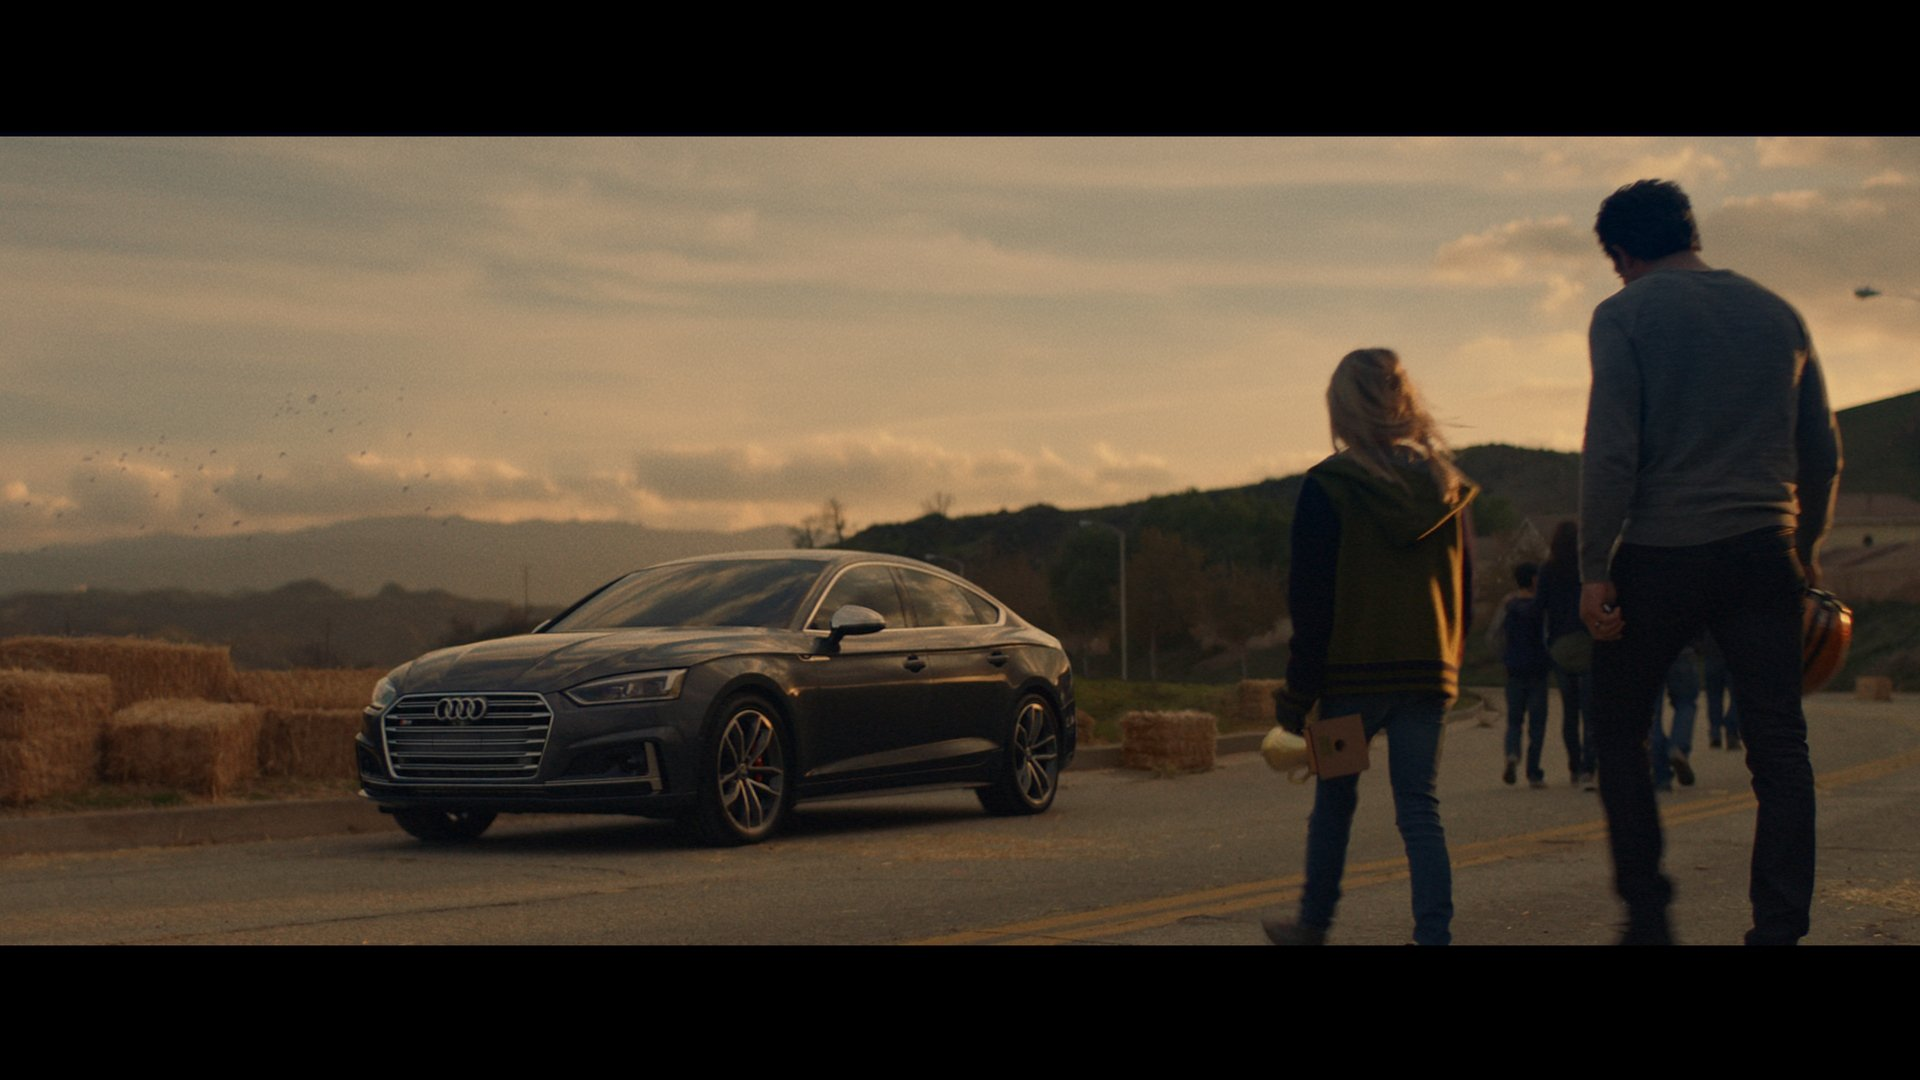 audi 39 s 2017 super bowl commercial daughter is about equal rig. Cars Review. Best American Auto & Cars Review